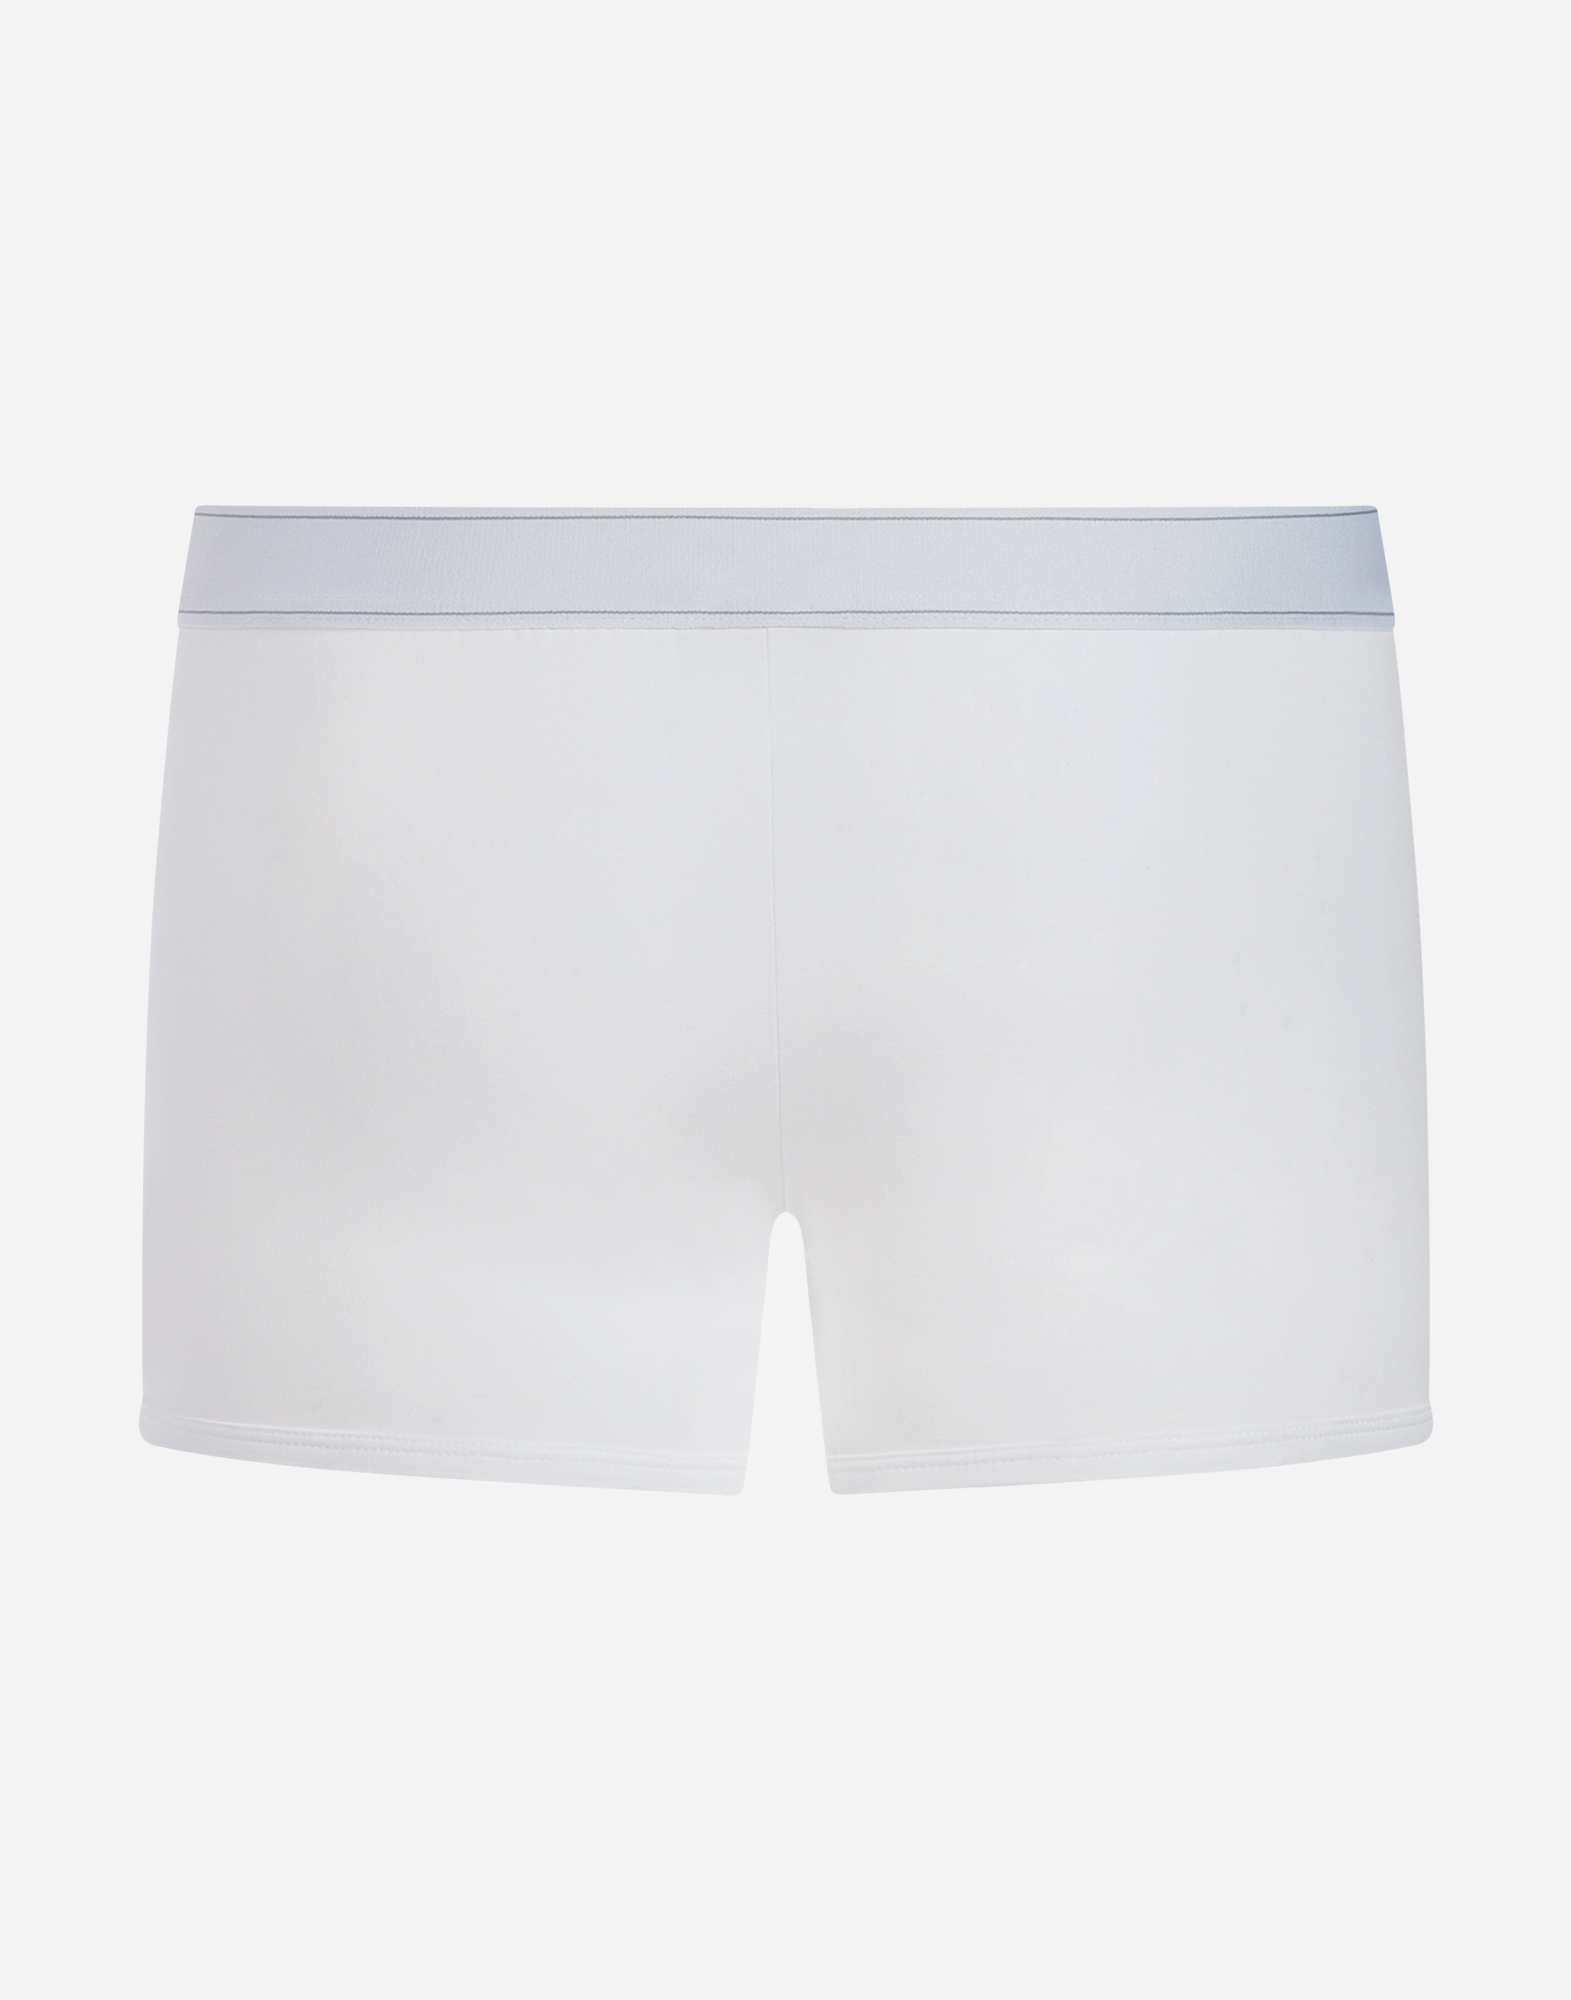 Dolce&Gabbana STRETCH COTTON BOXERS